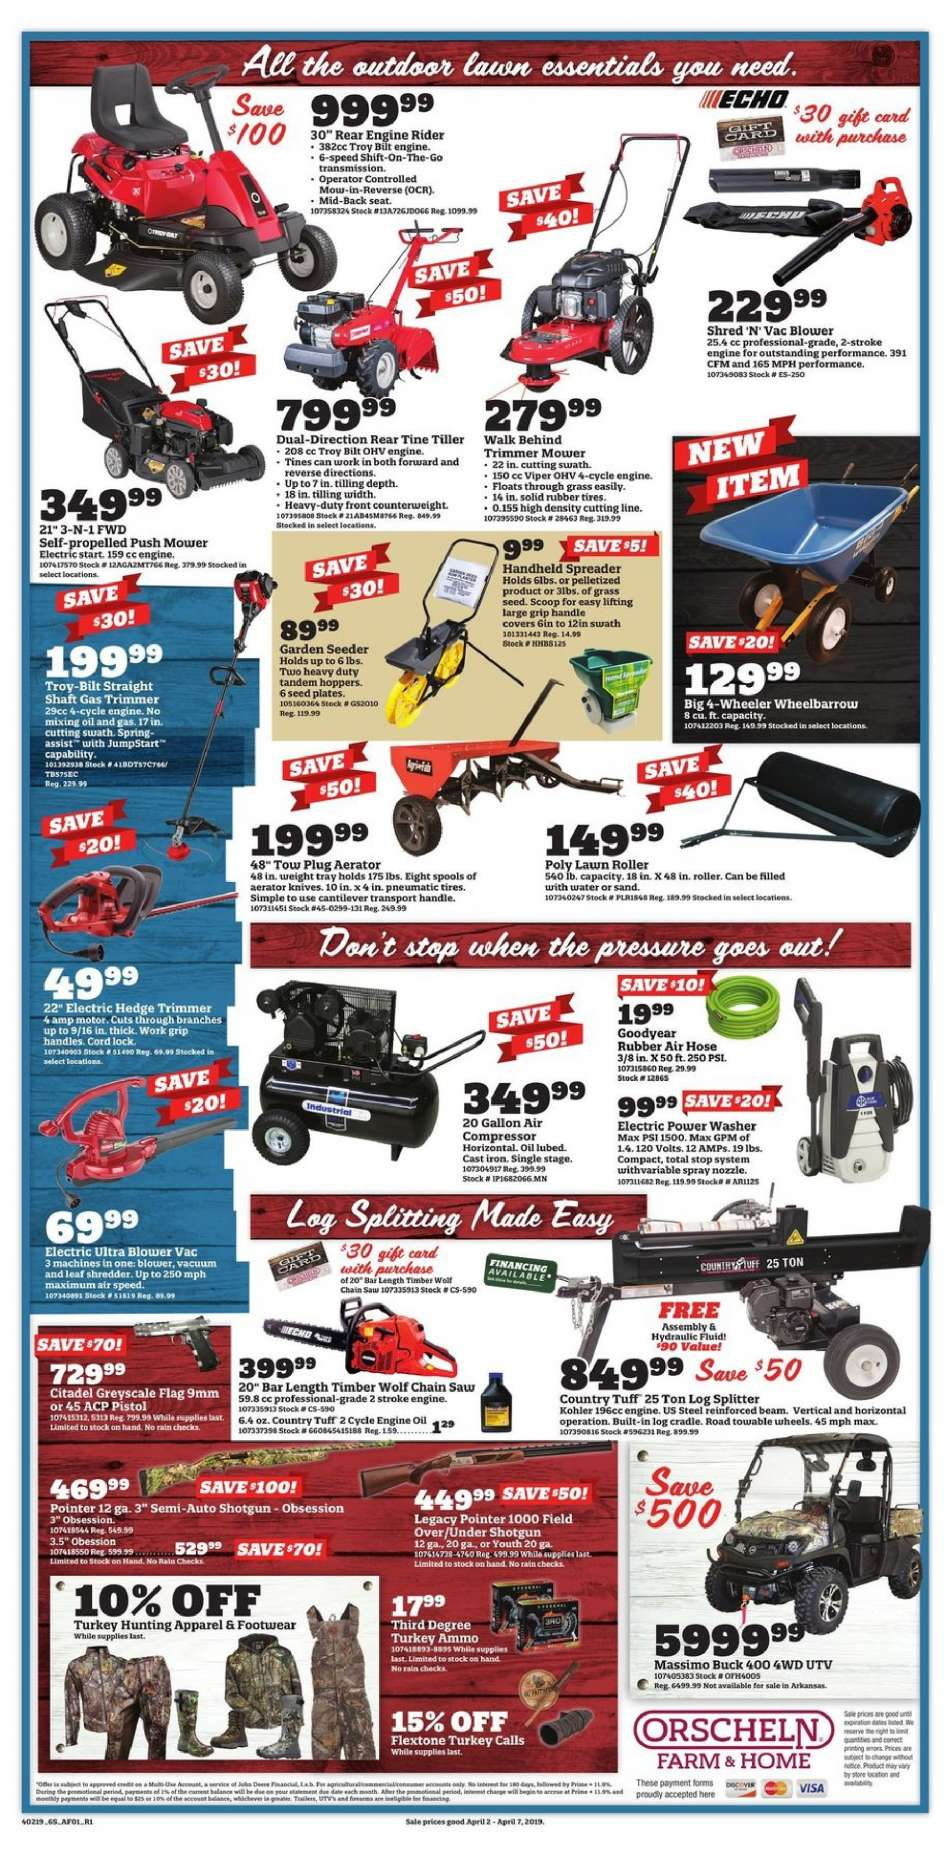 Orscheln Farm and Home flyer 04 02 2019 - 04 07 2019